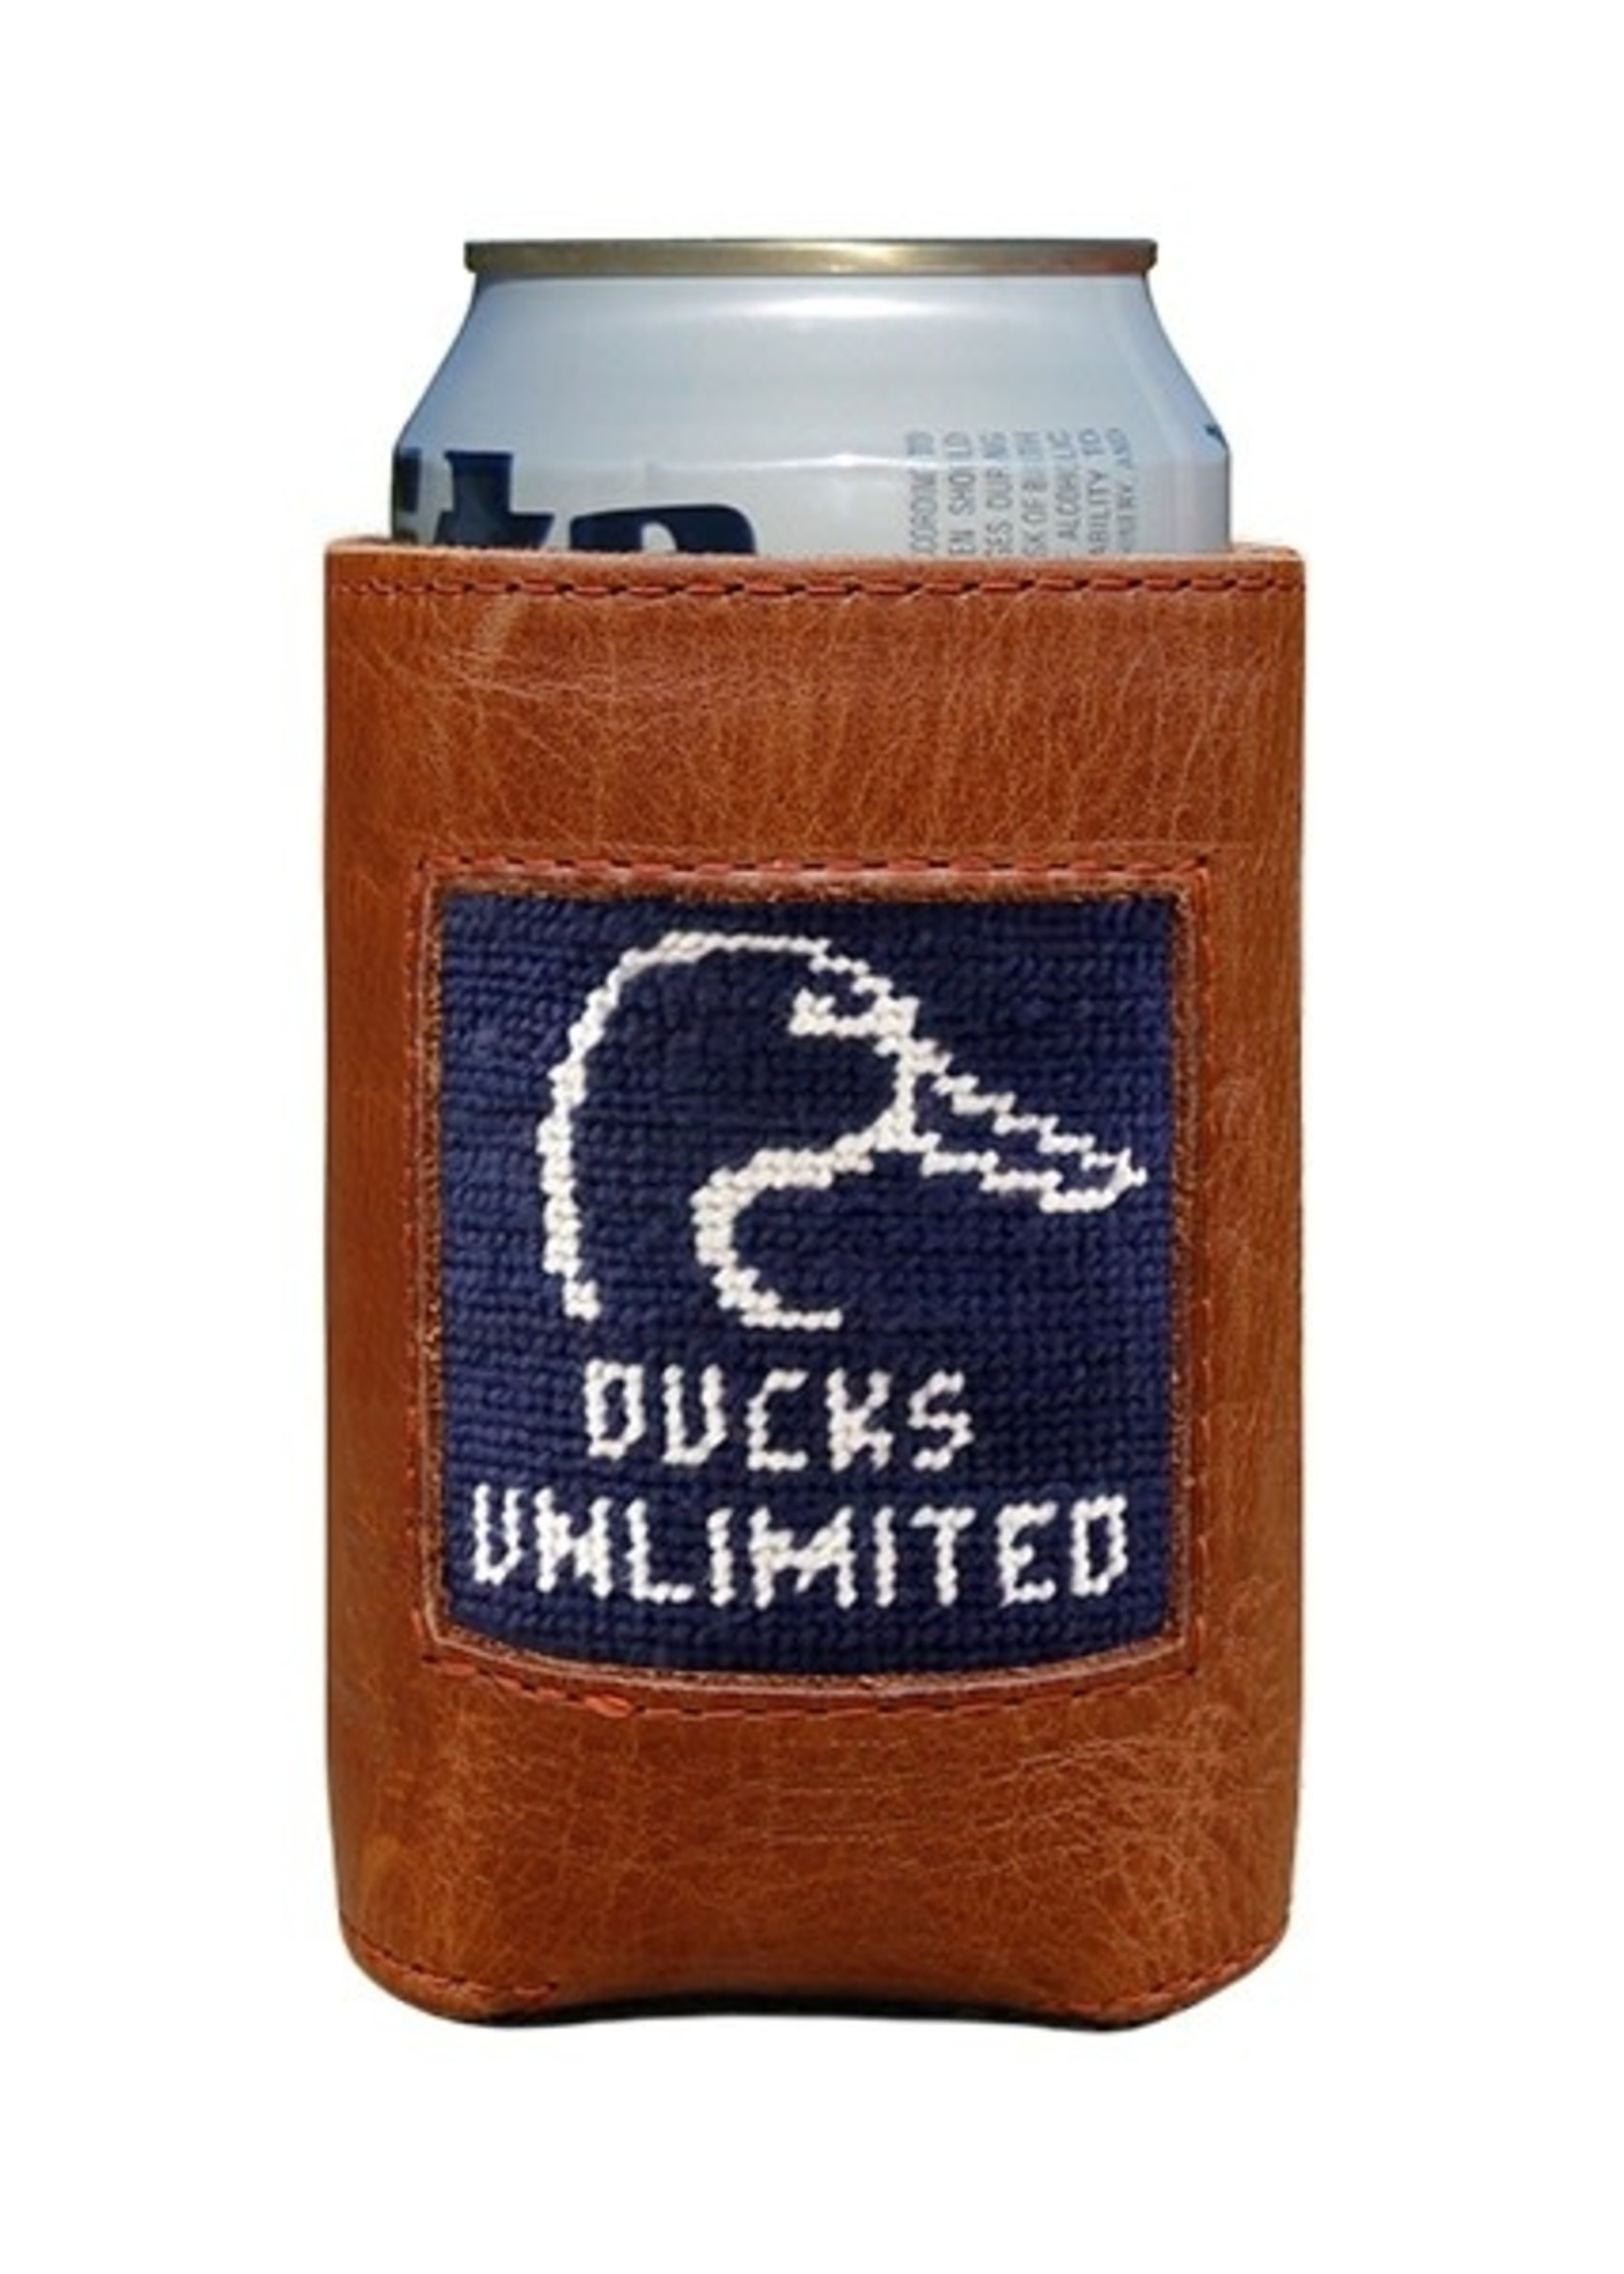 Smathers & Branson Ducks Unlimited Needlepoint Coozie